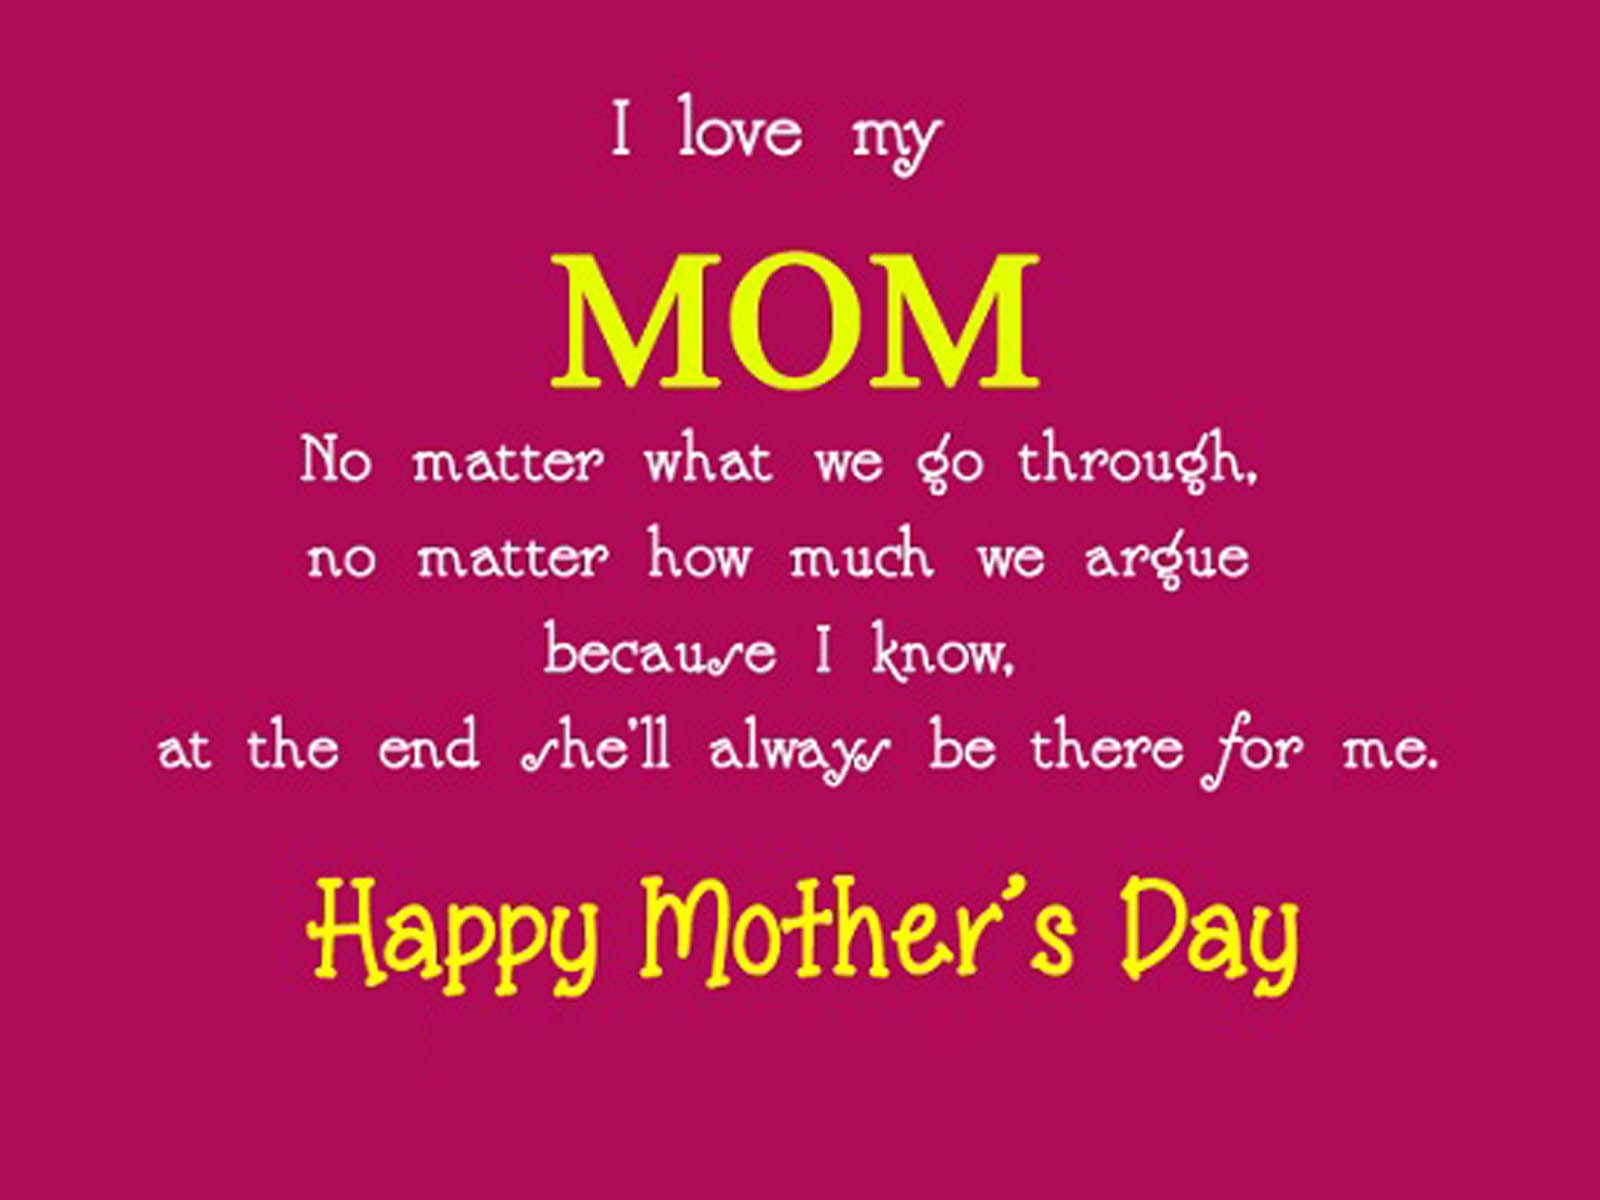 Mothers Day Quotes Happy Mother's Day Quotes And Messages To Wish Your Mom  Happy